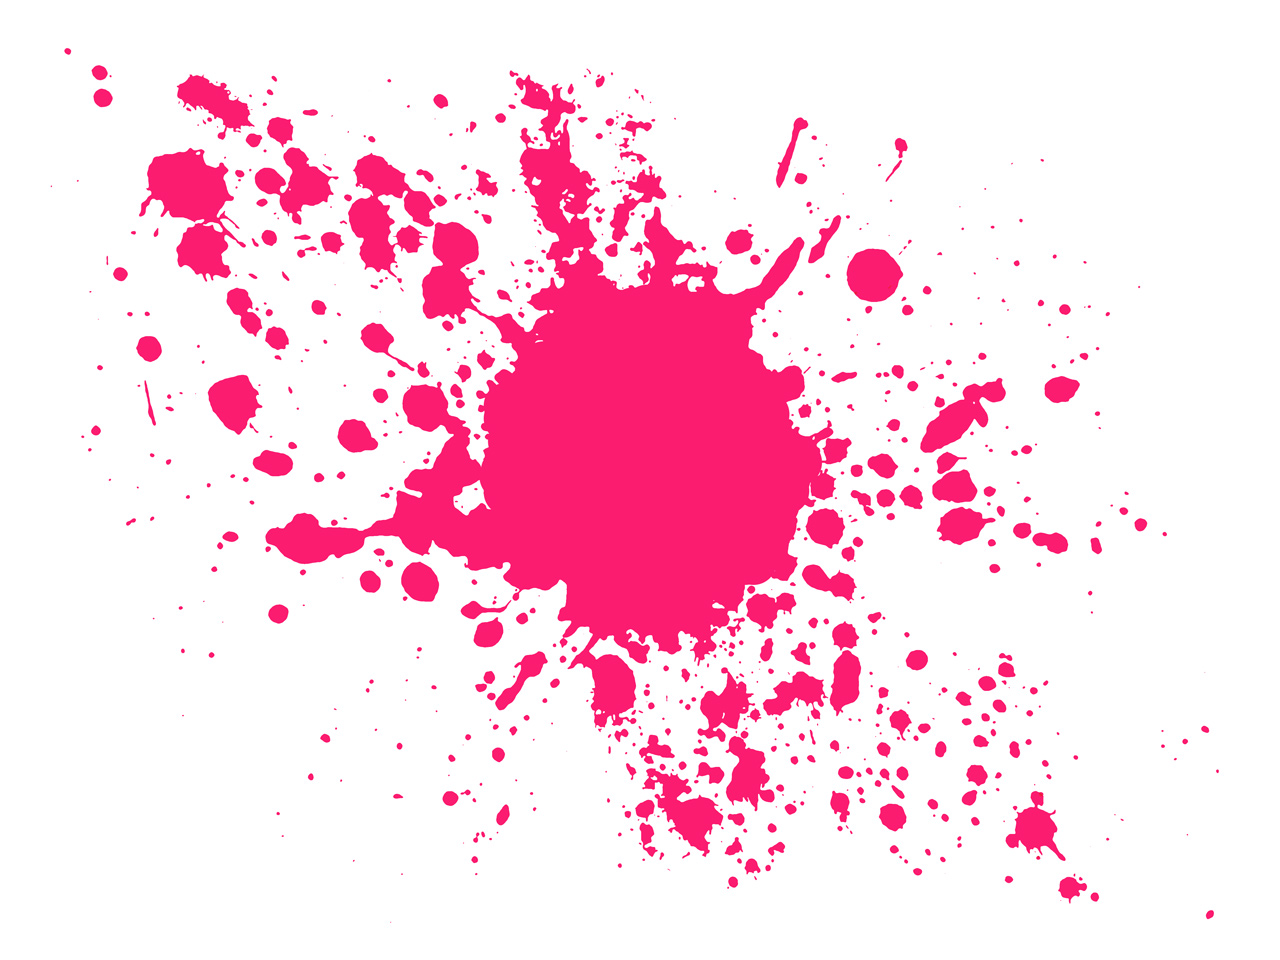 pink water splash clipart #17